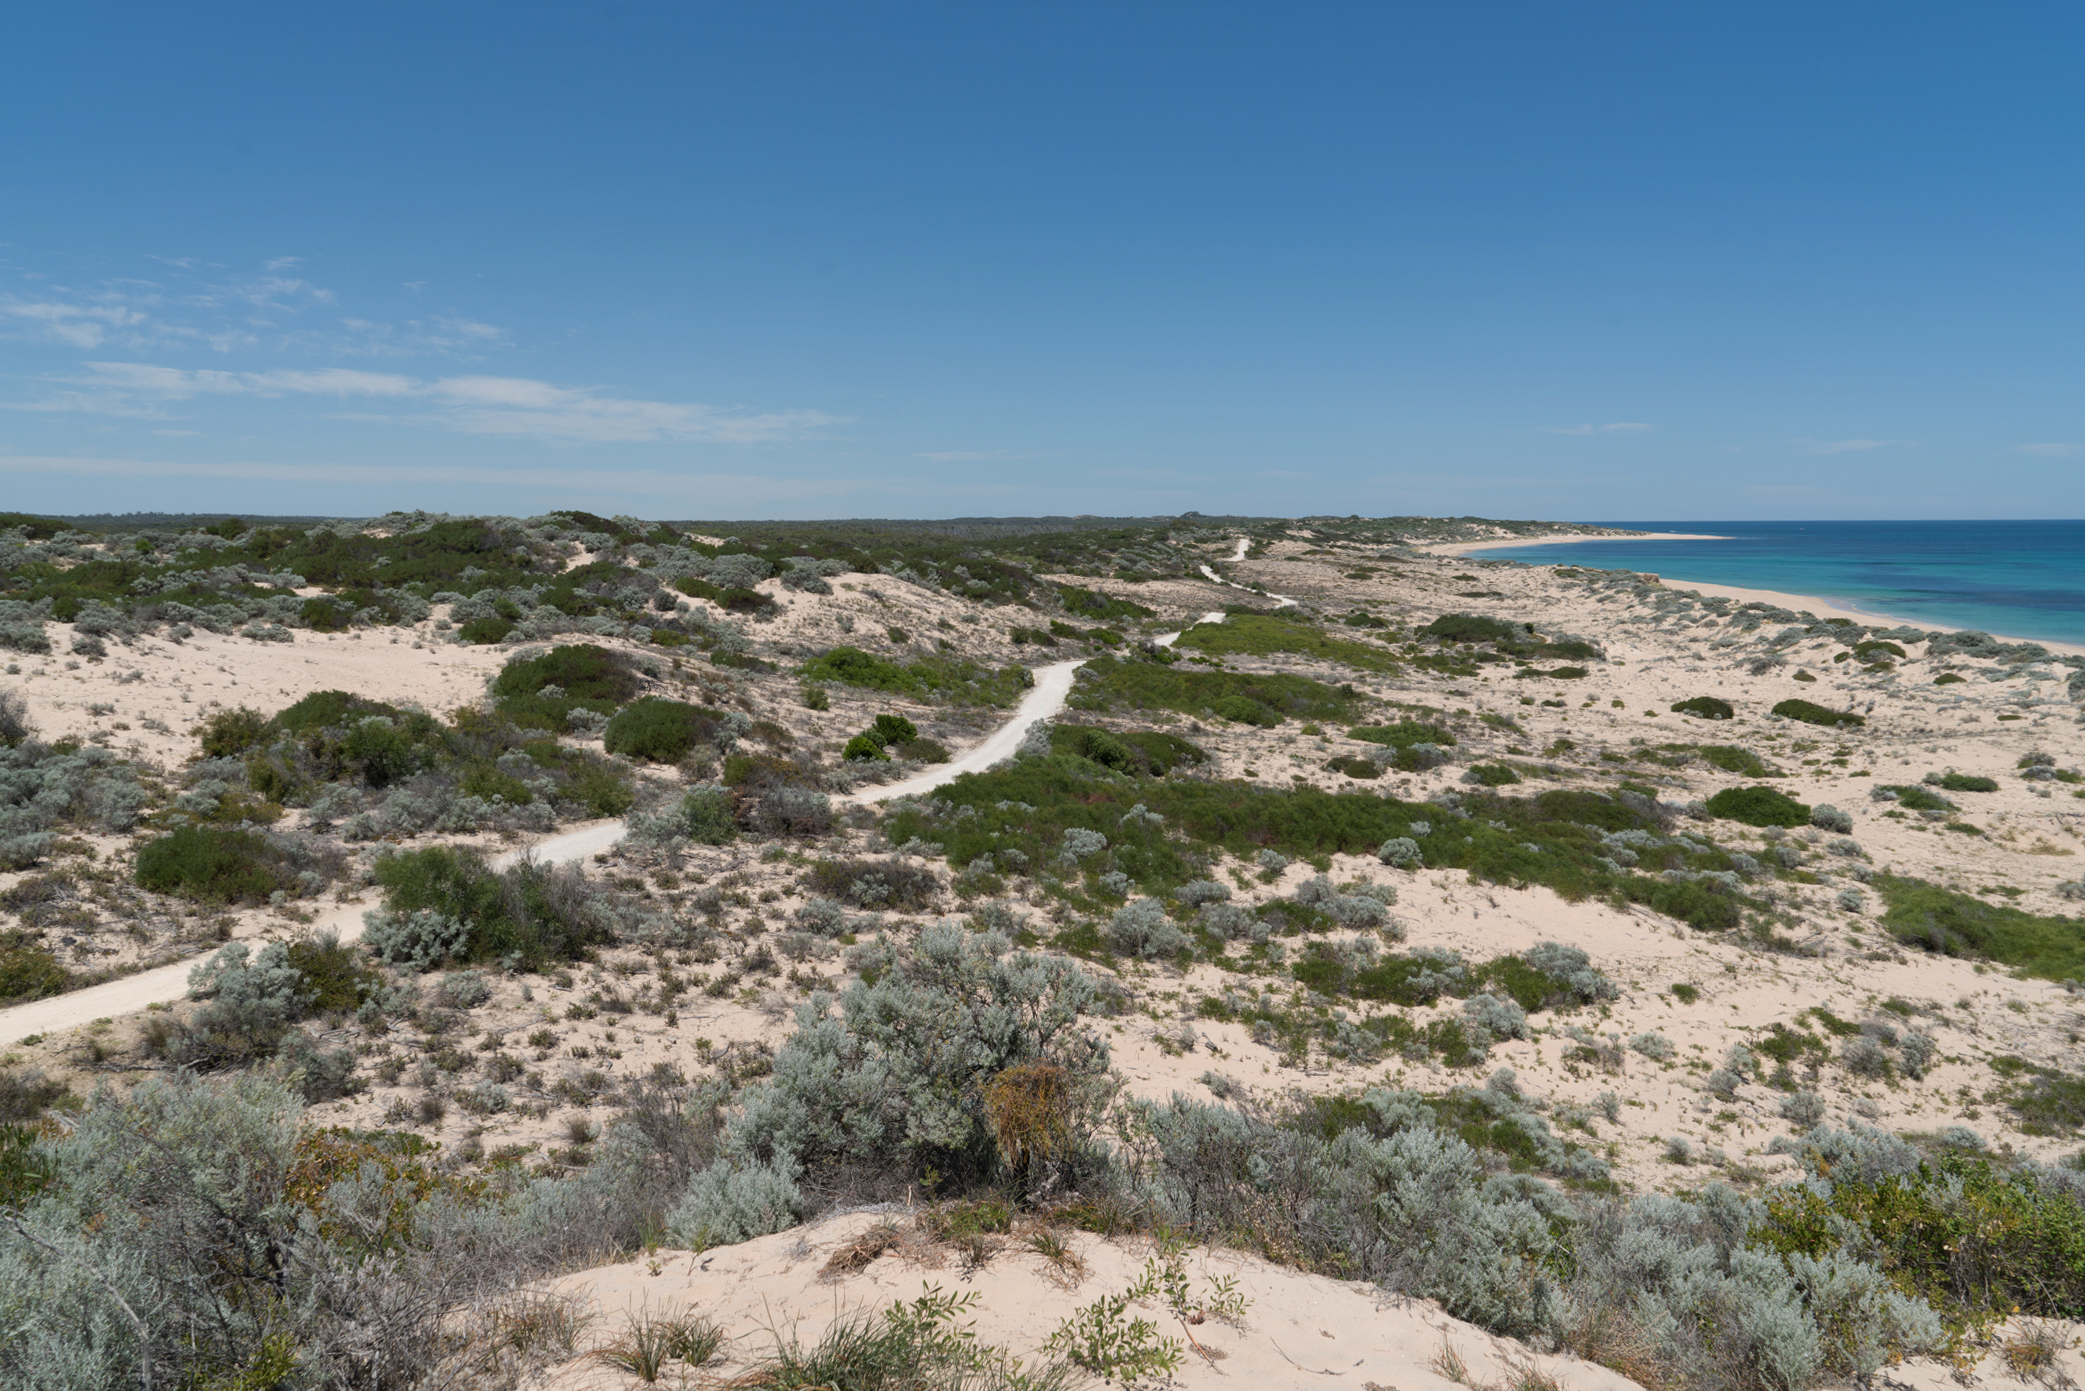 Plate 4: View of limestone track to Tims Thicket Beach form the lookout